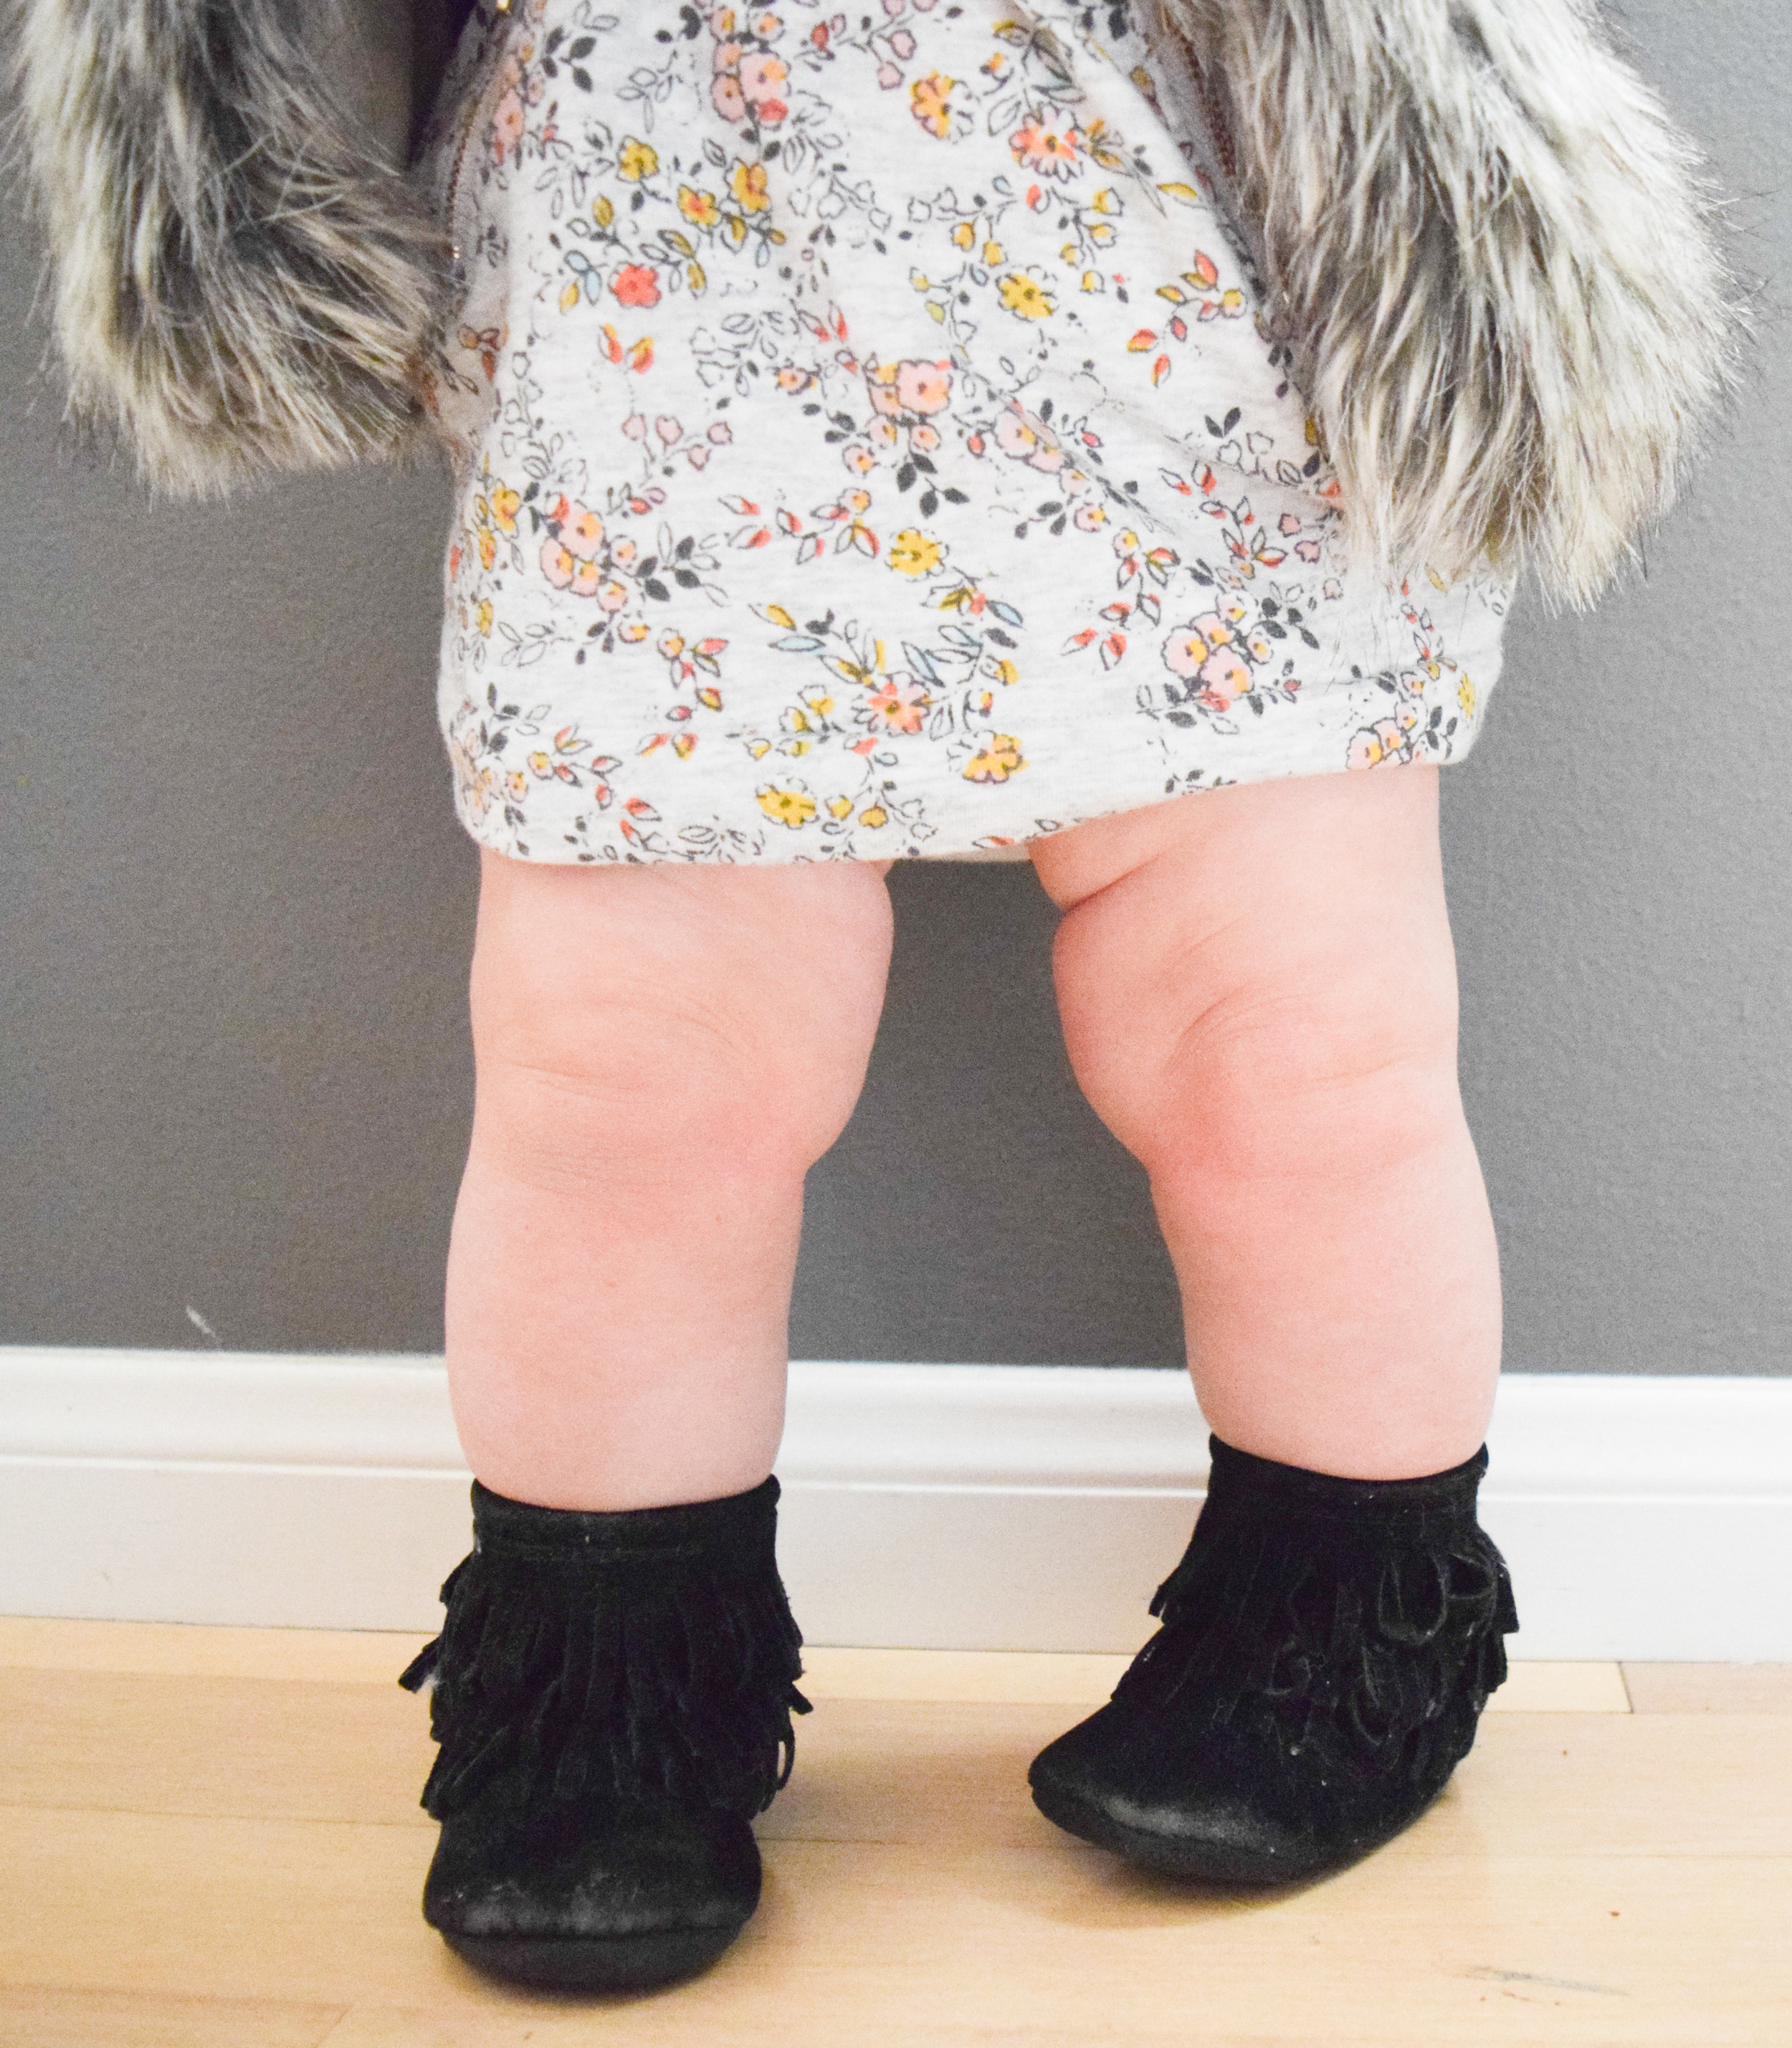 BABY FASHION | A casual fall baby outfit